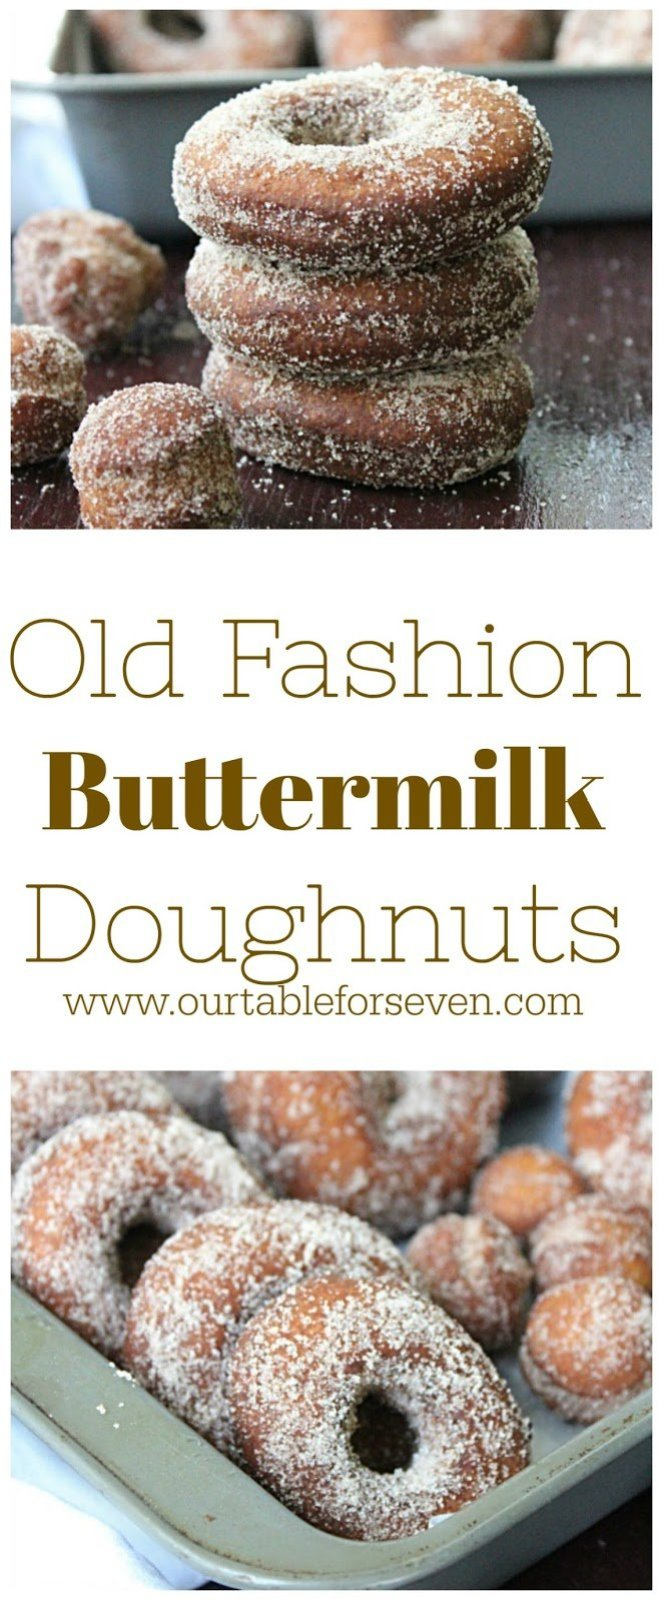 Old Fashion Buttermilk Doughnuts from Table for Seven:  The classic doughnut! Super easy to make and so delicious. You will not be able to eat just one!